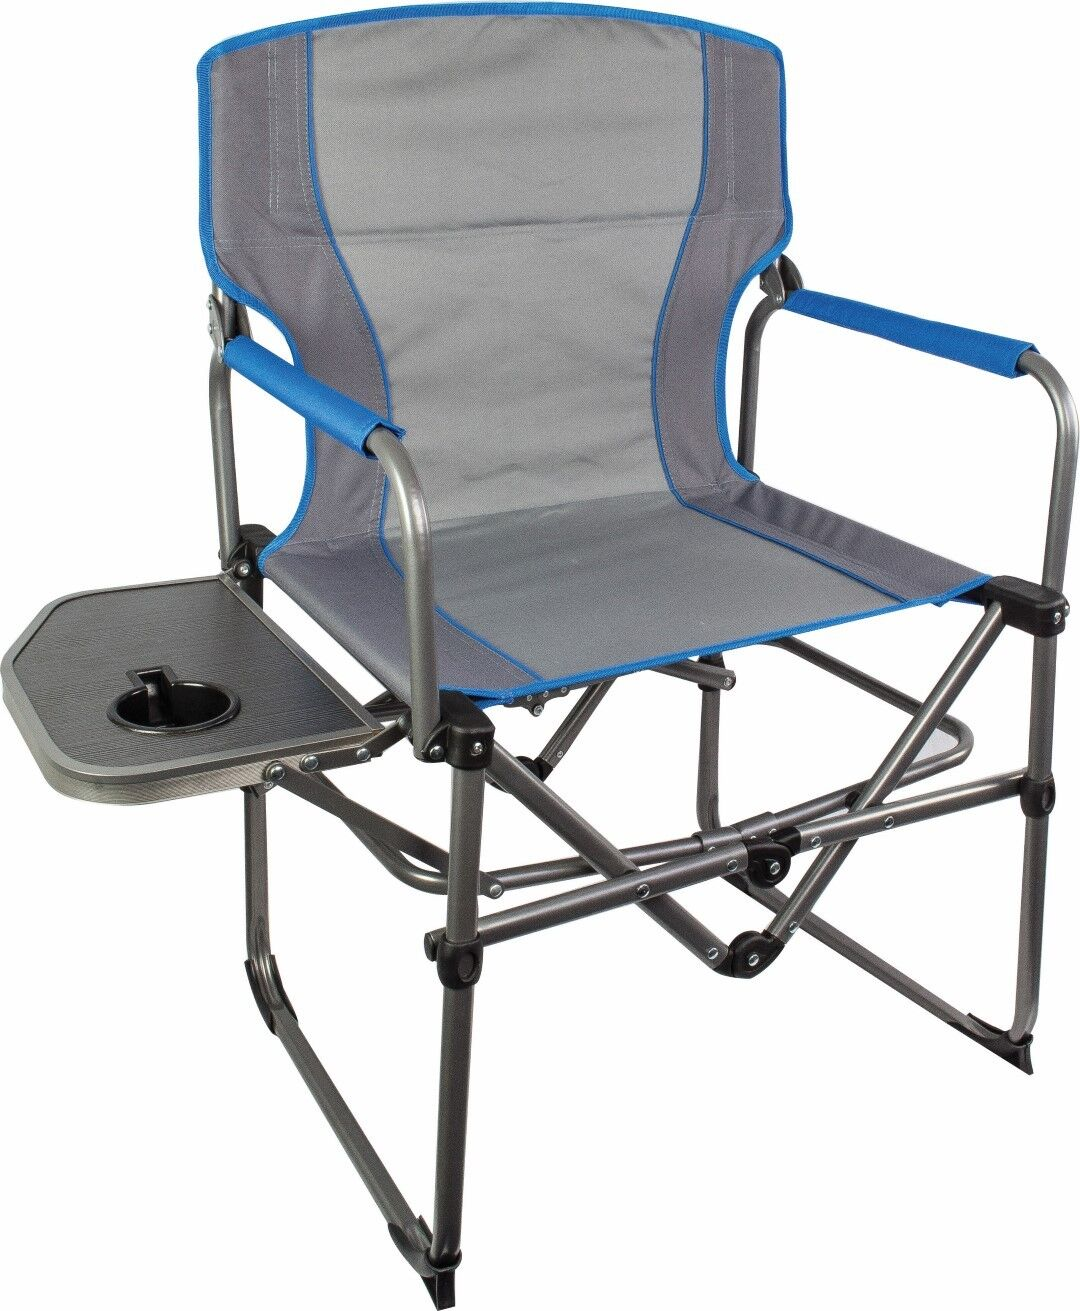 Compact Directors Chair with Side Side Side Table - Folding Compact Chair Camping Outdoor 07f00a